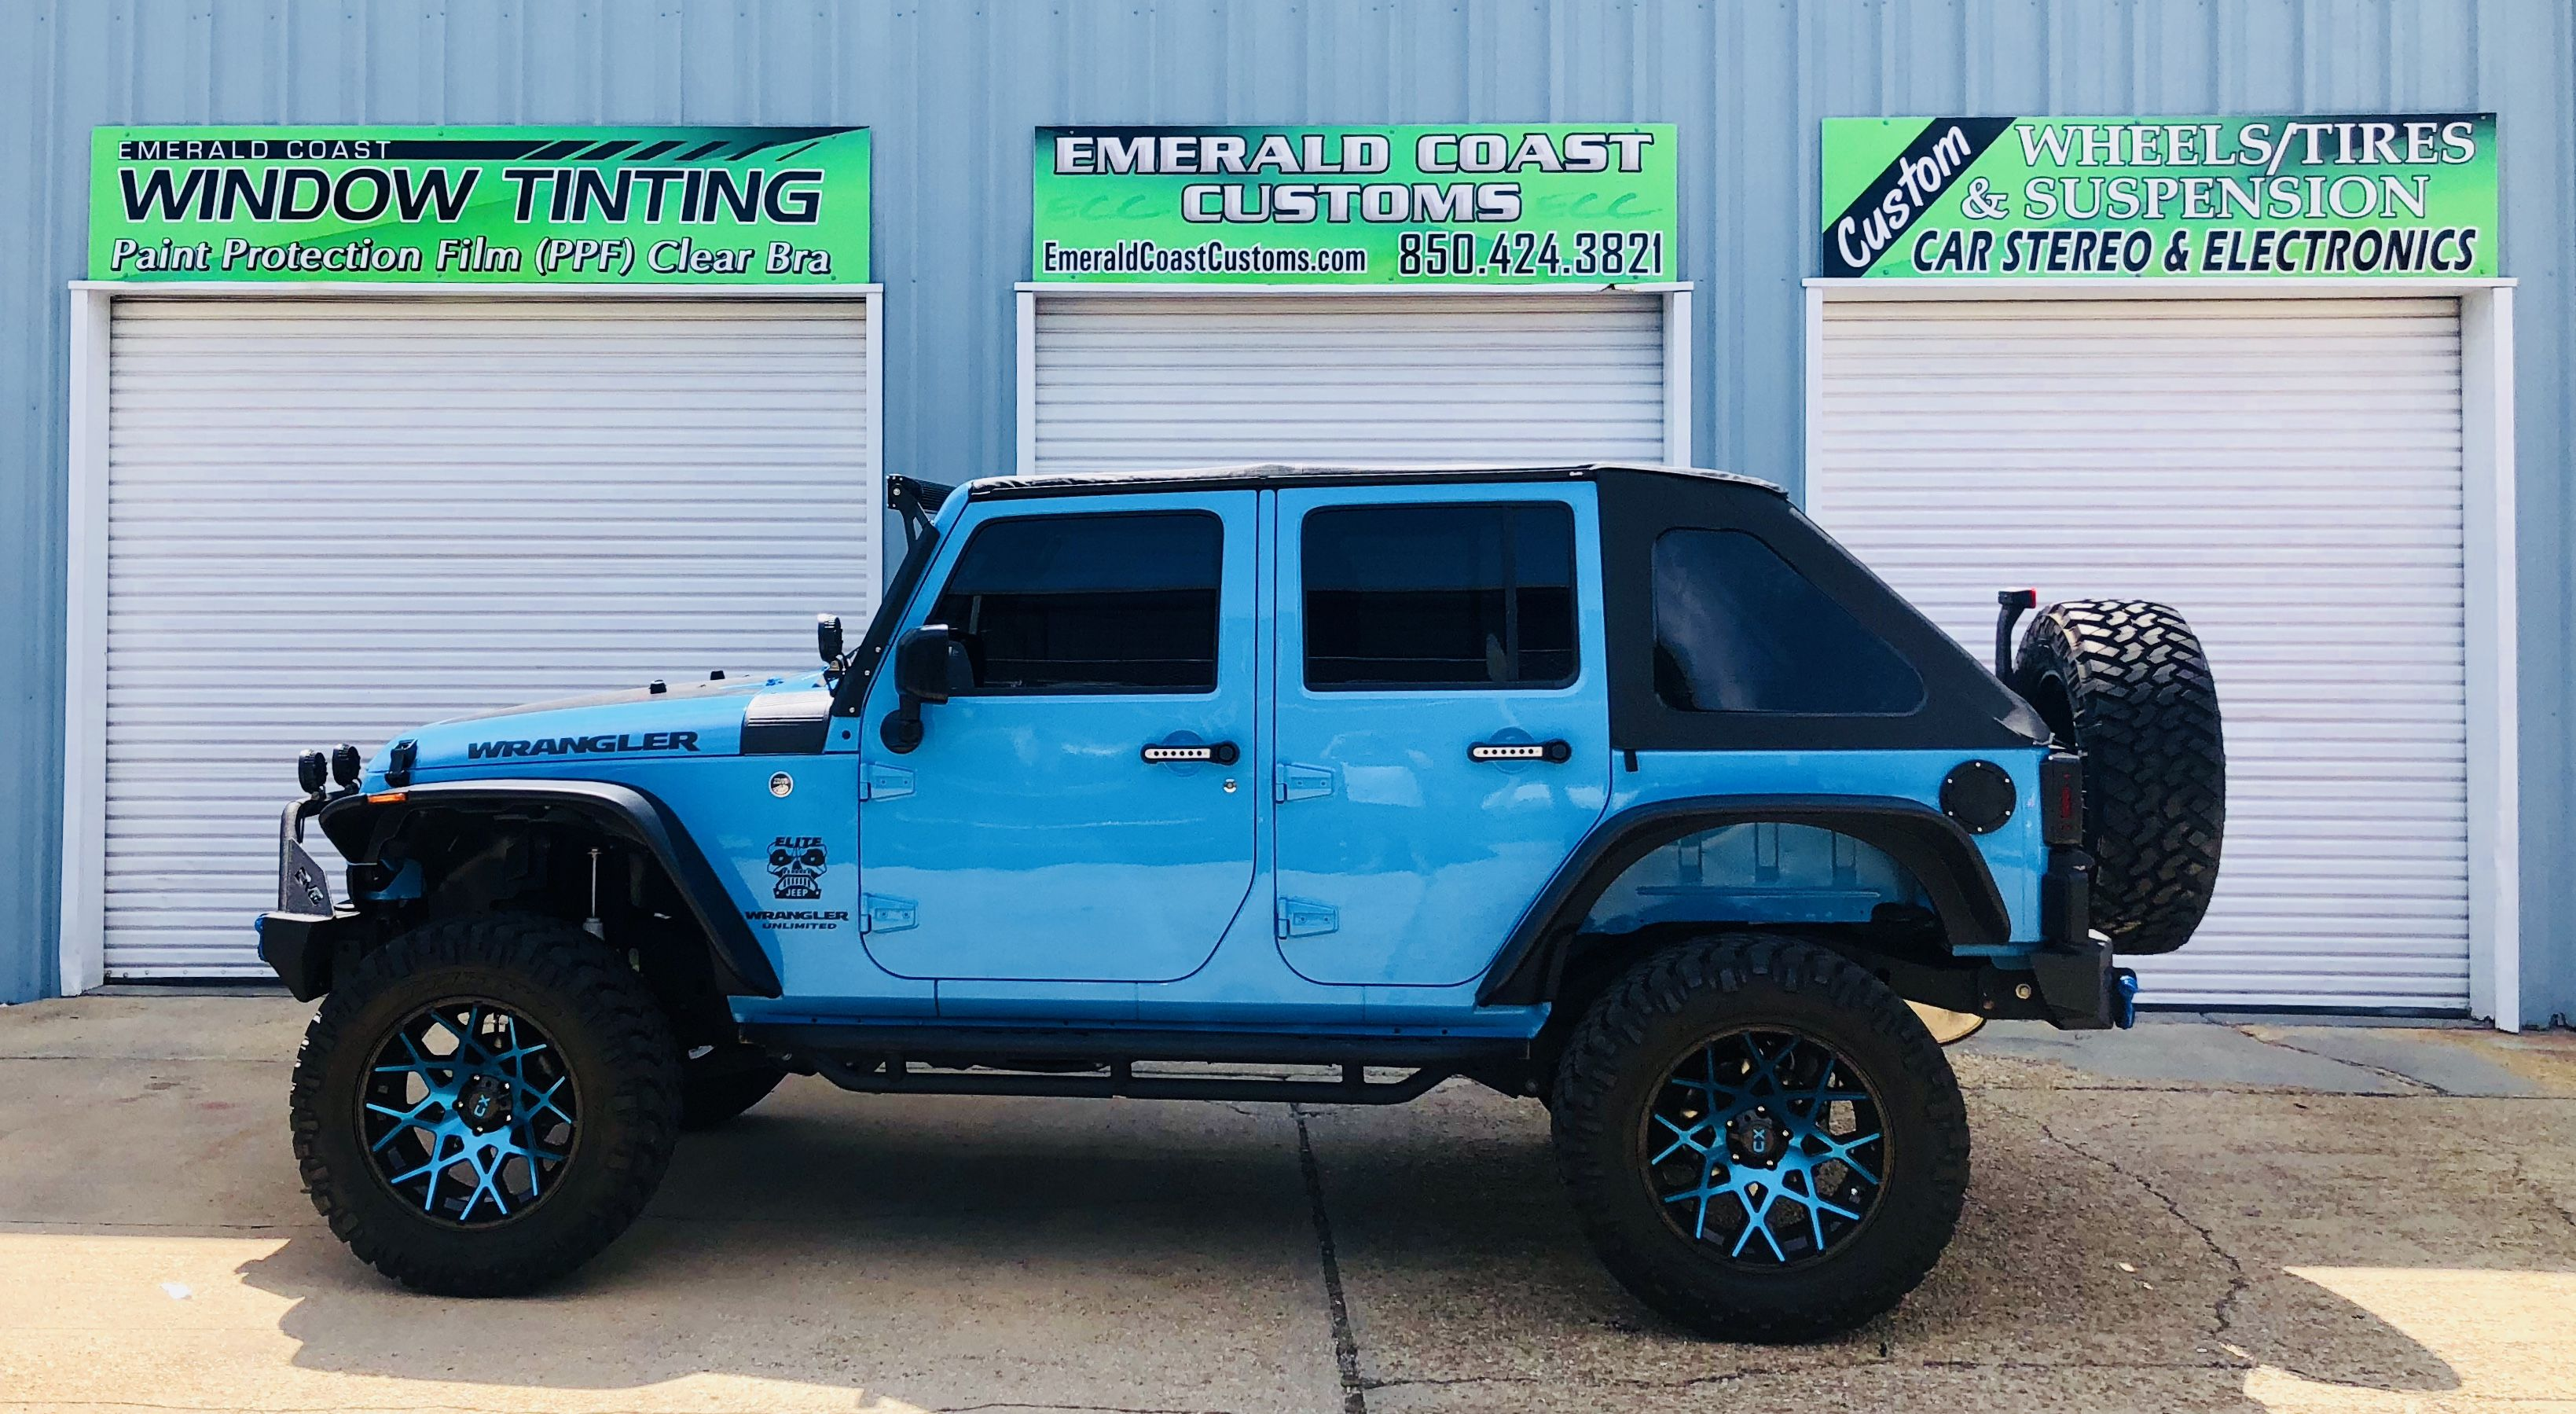 Baby Blue Jeep Wrangler Suntek Window Tint Cooled This Beautiful Jeep Right Down Blue Jeep Wrangler Blue Jeep Rubicon Blue Jeep